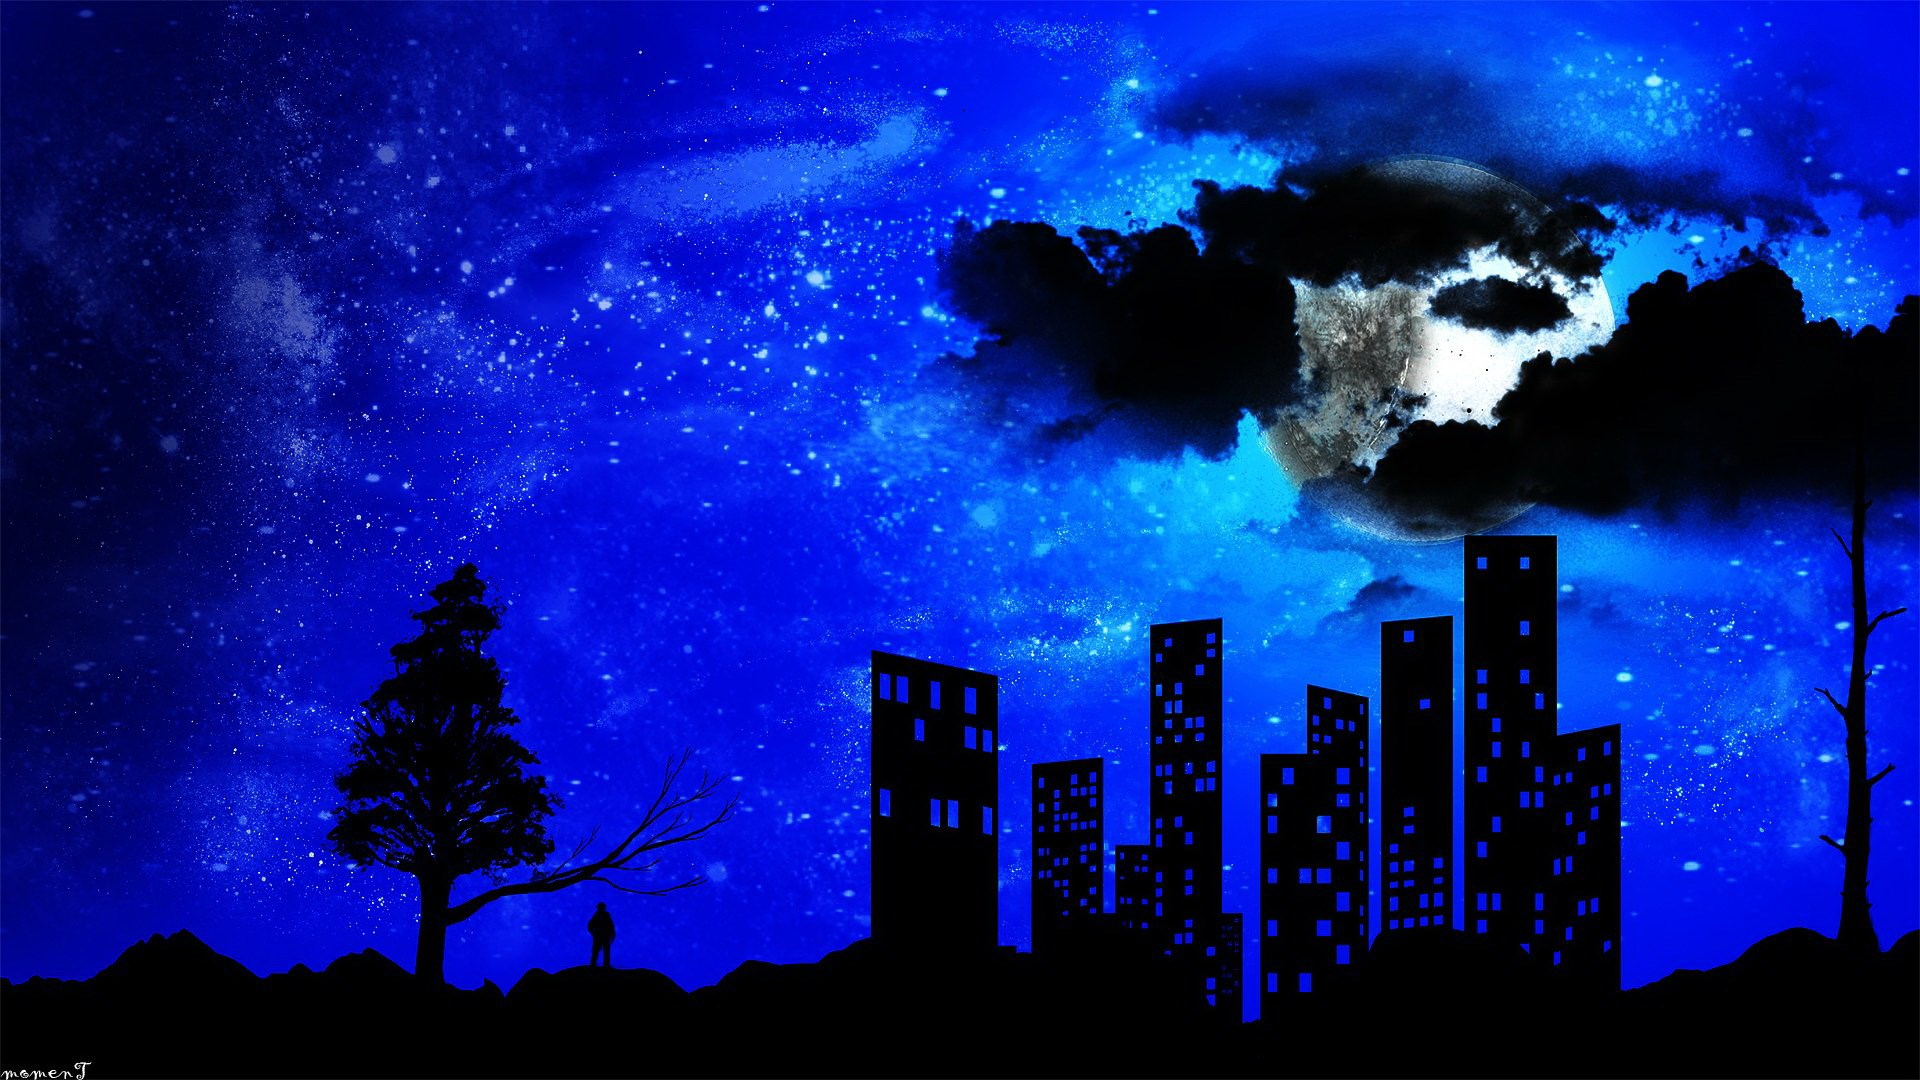 1920x1080-free-and-screensavers-for-night-wallpaper-wpc580790